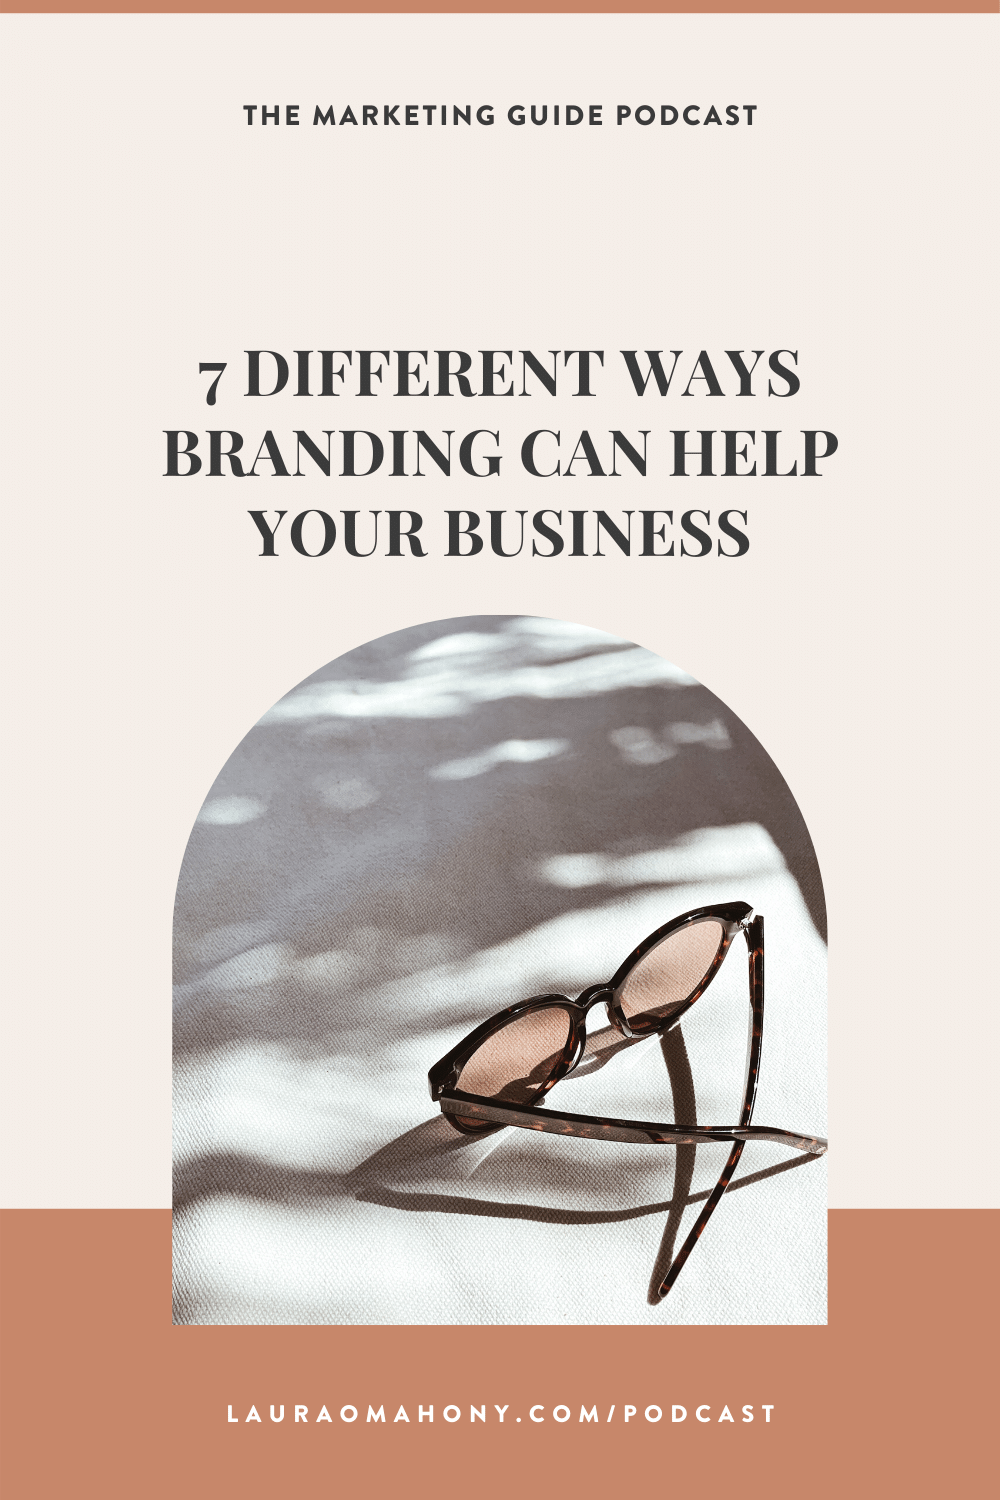 Episode 52 of The Marketing Guide 7 Different Ways Branding Can Help Your Business